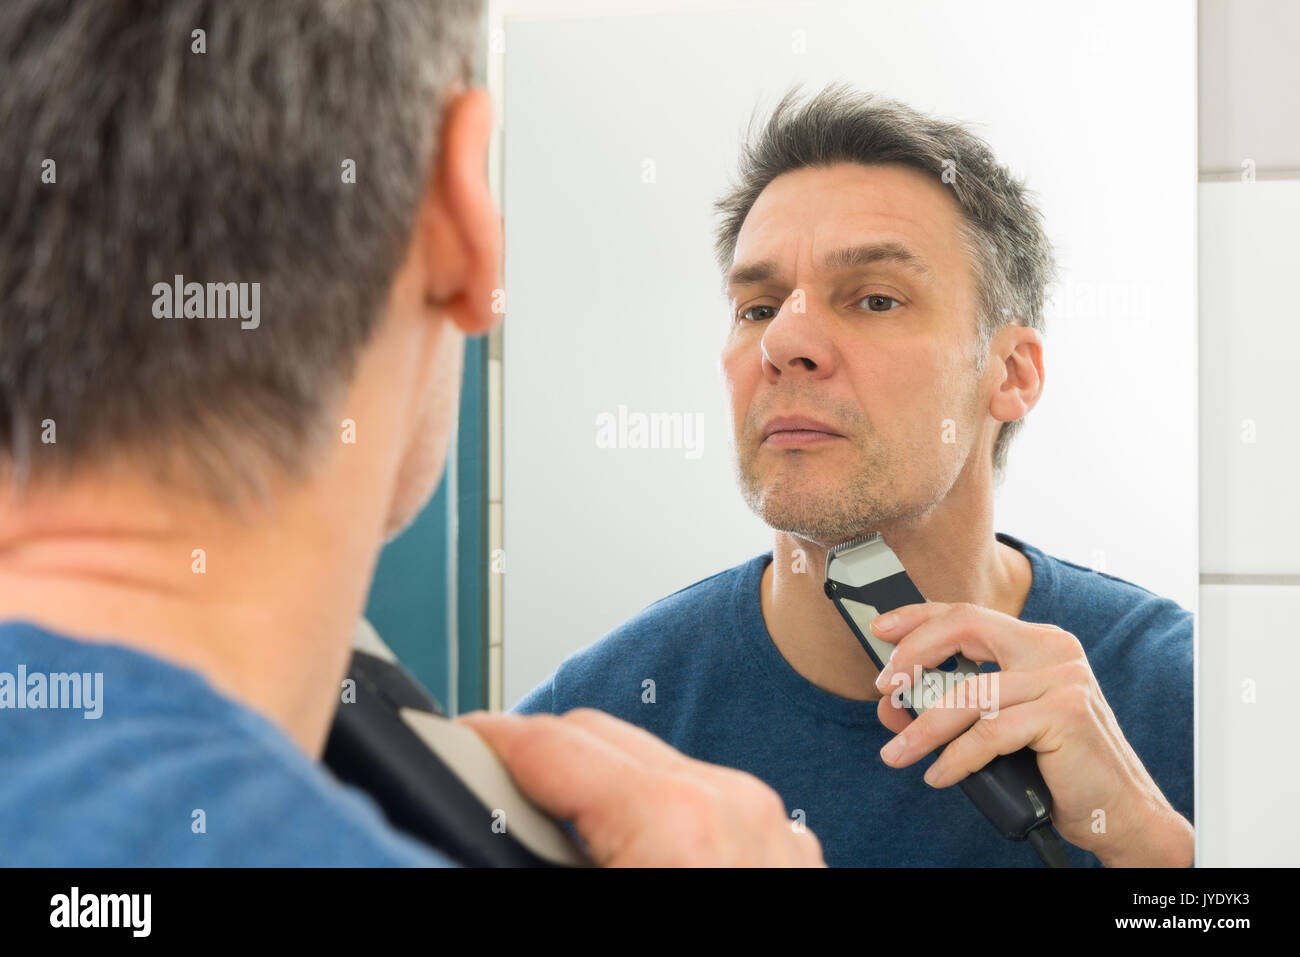 face shave stock photos face shave stock images alamy. Black Bedroom Furniture Sets. Home Design Ideas